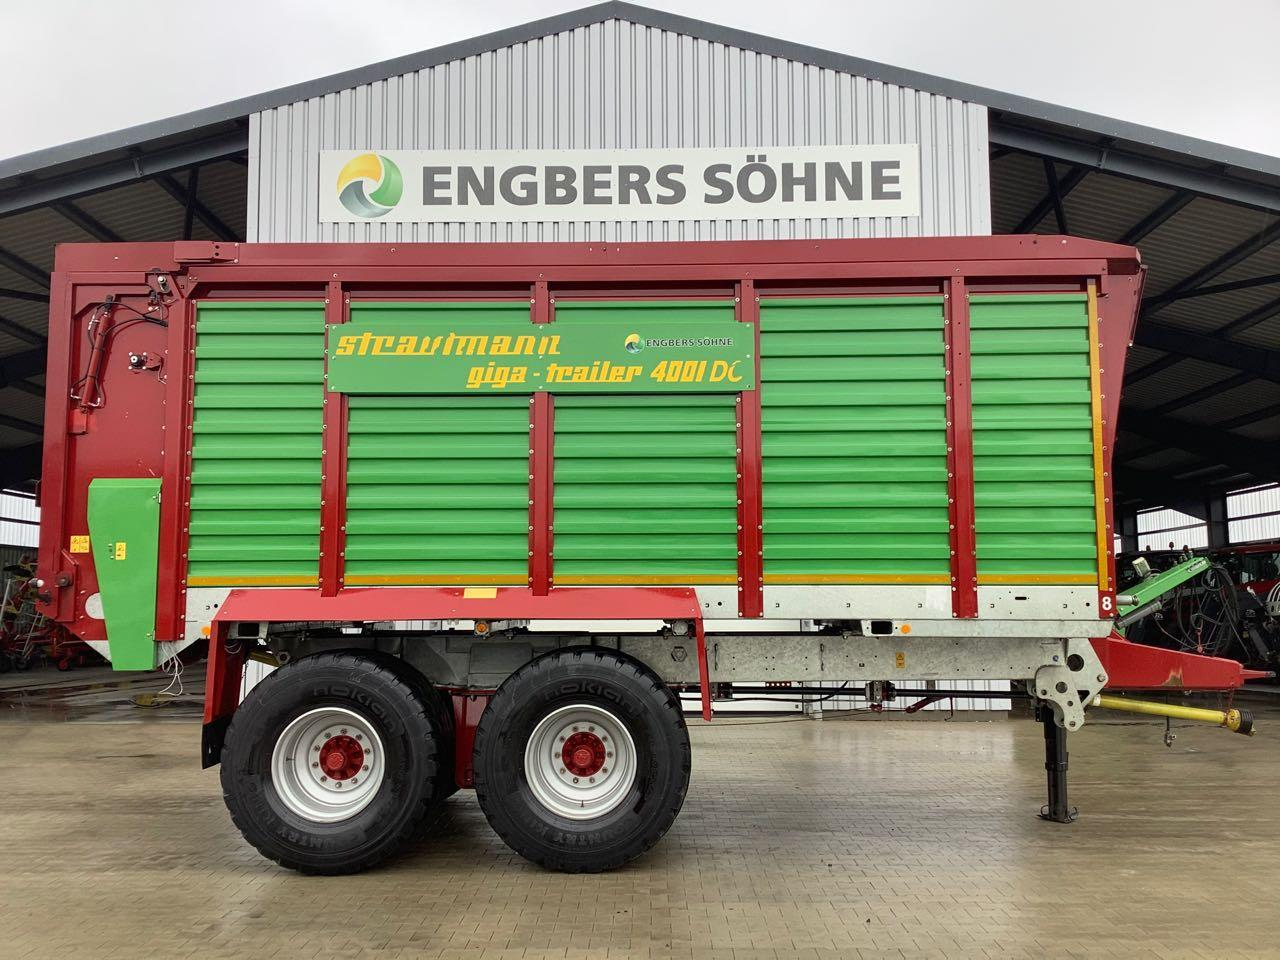 Strautmann Giga Trailer 4001 DO